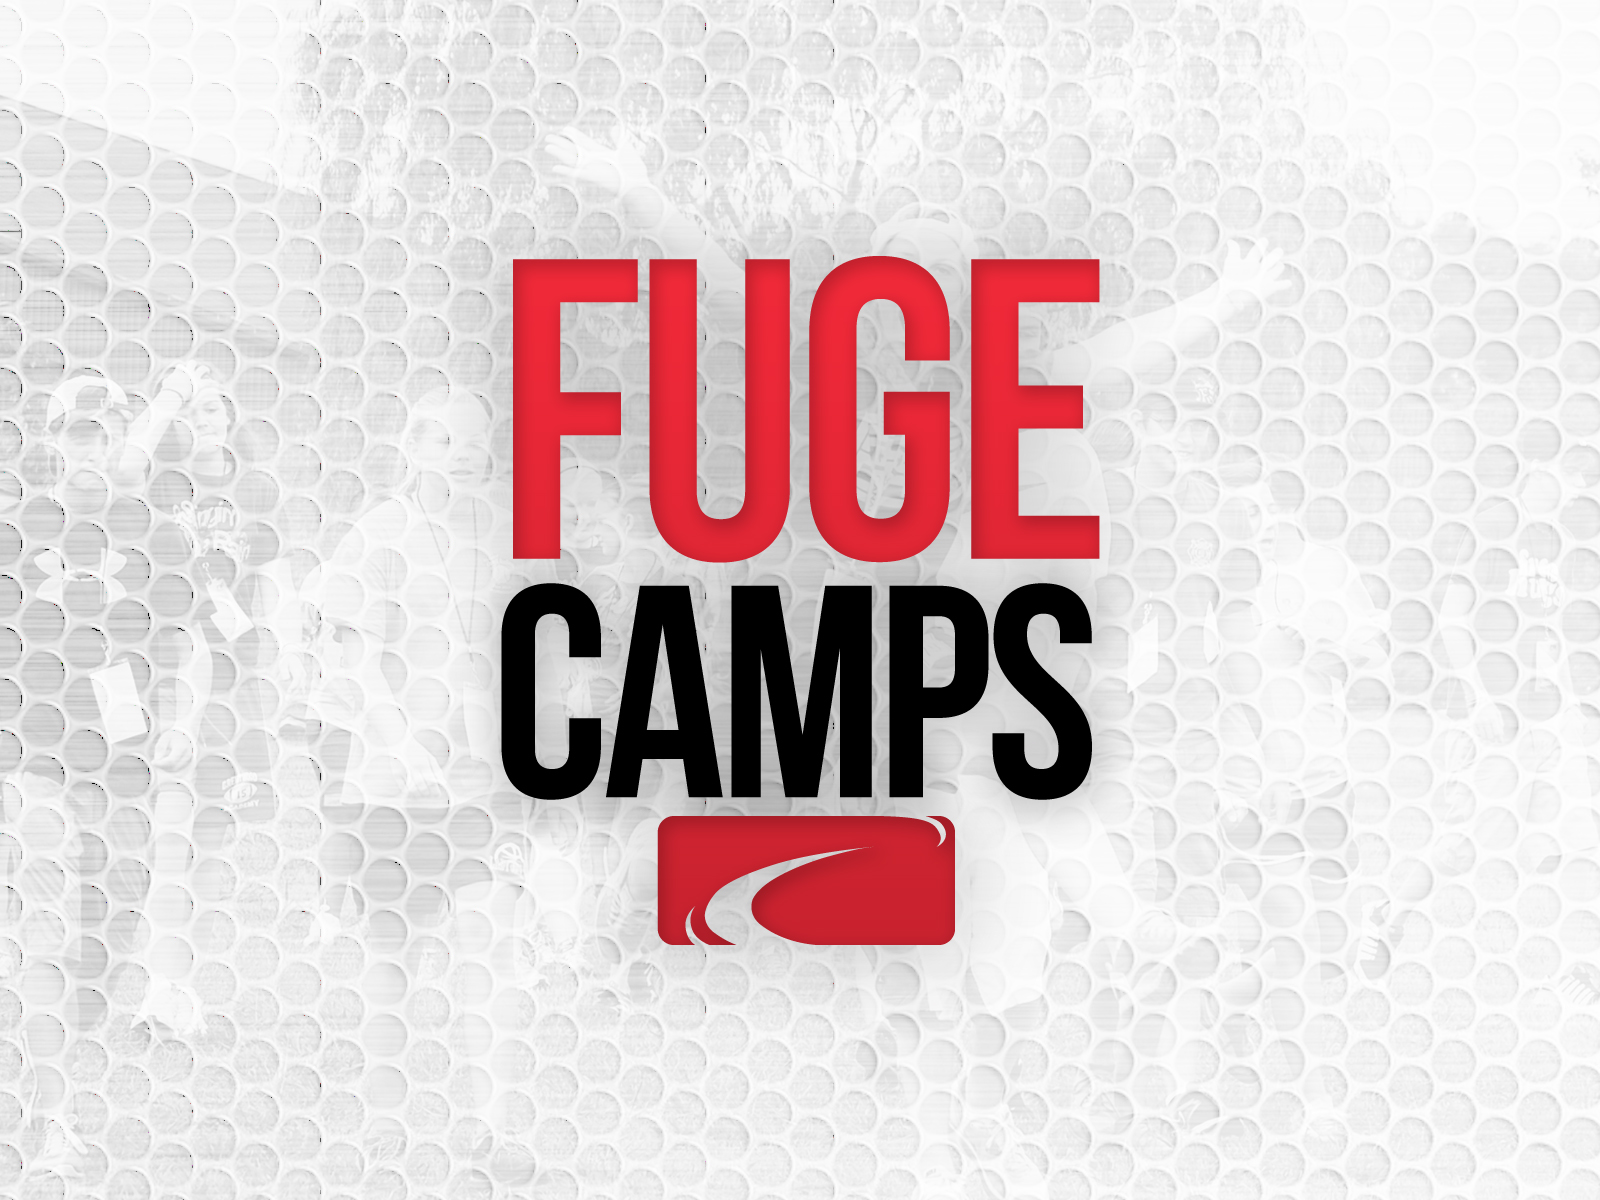 Mfuge graphic